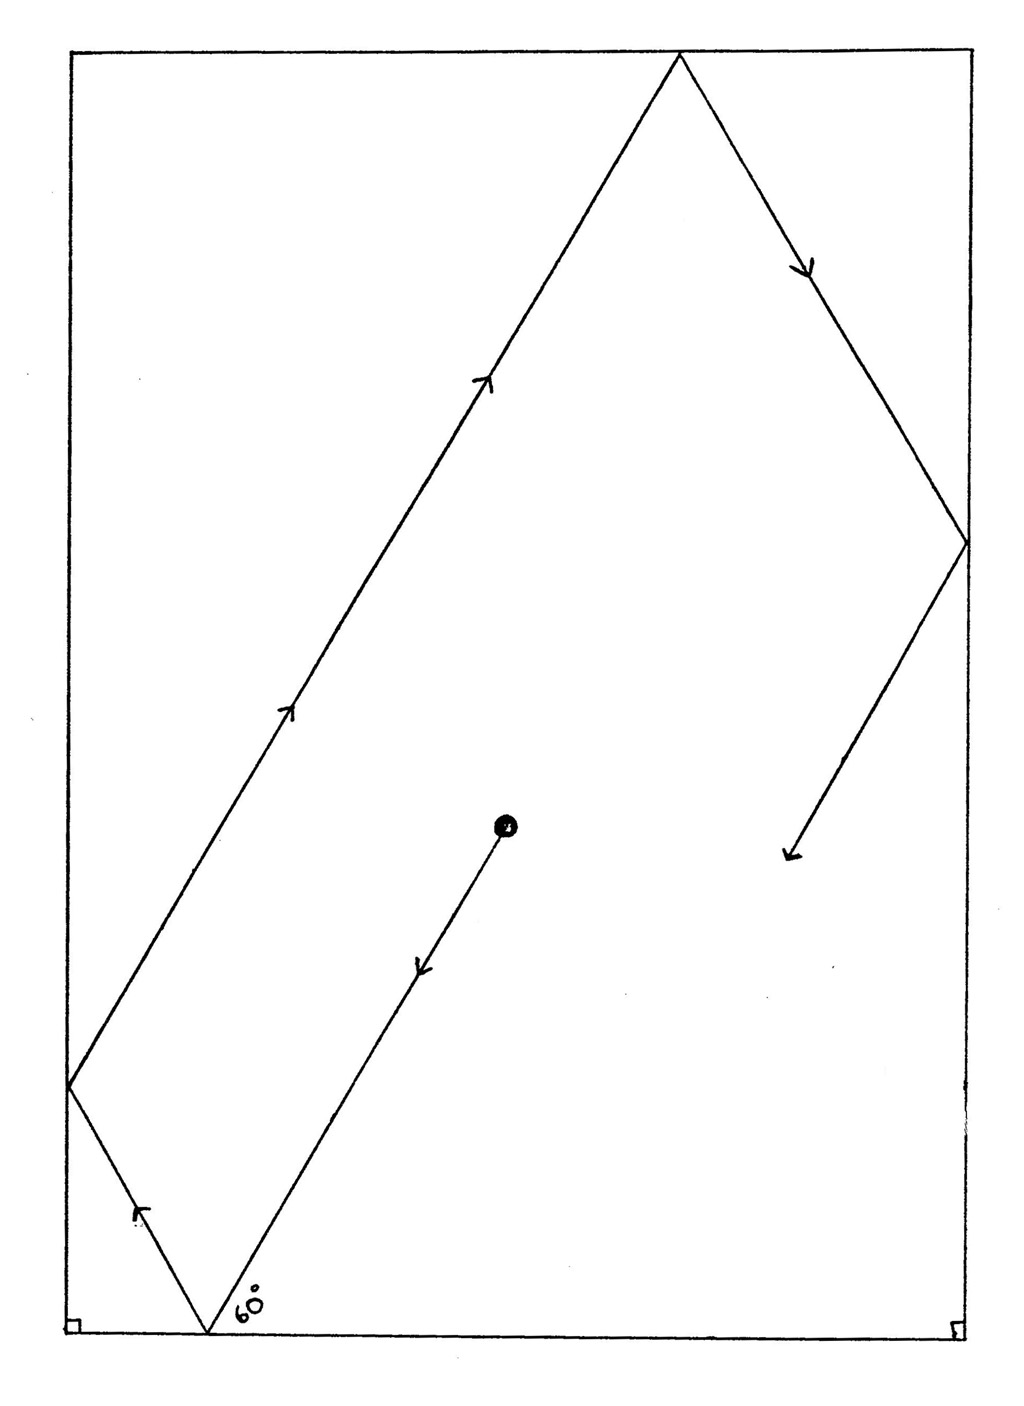 Pool Table Geometry Worksheet